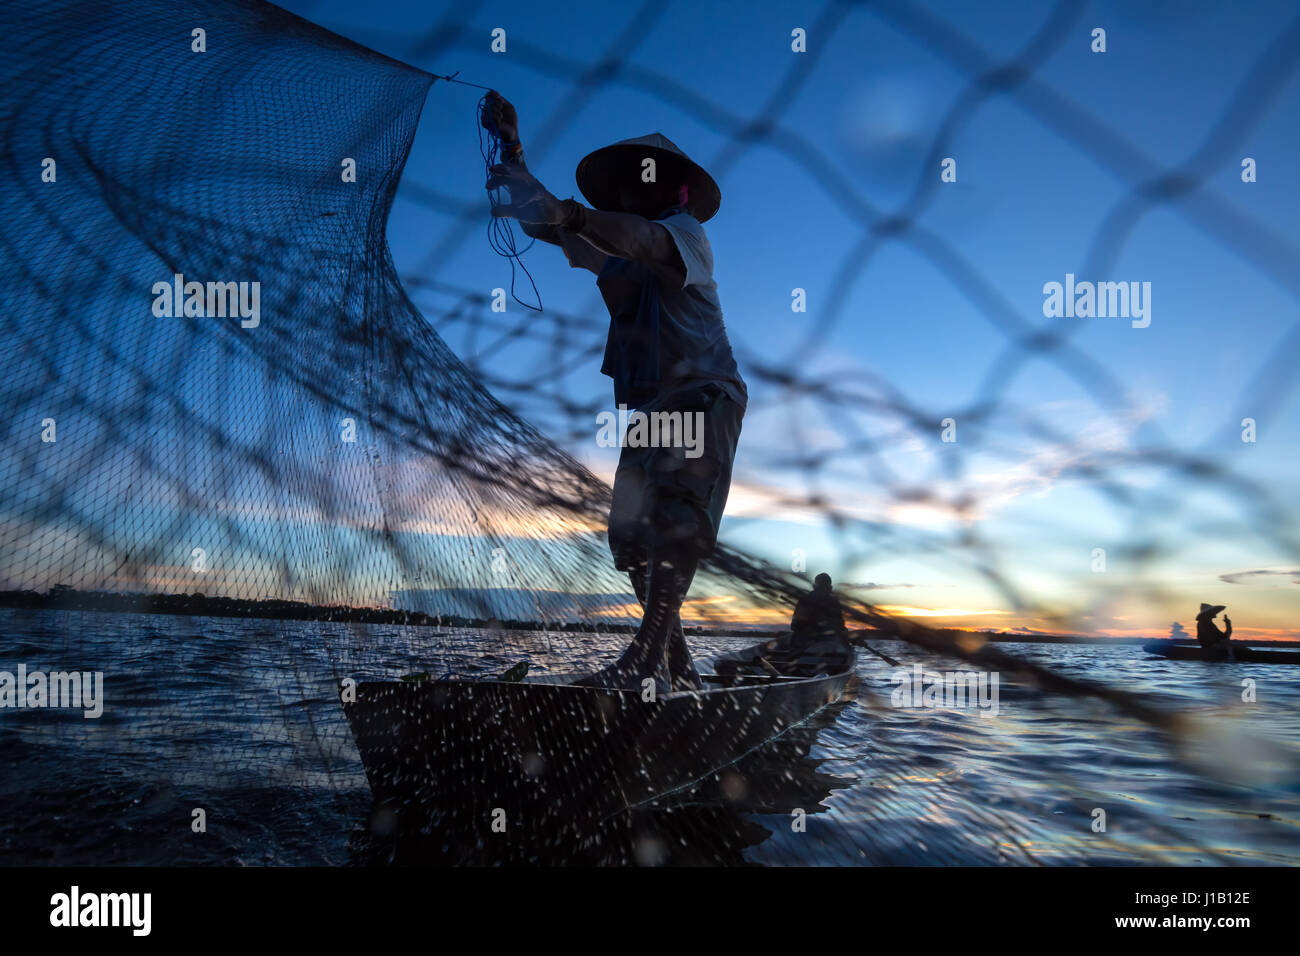 Thai fisherman on wooden boat casting a net for catching freshwater fish in nature river in the early evening before - Stock Image